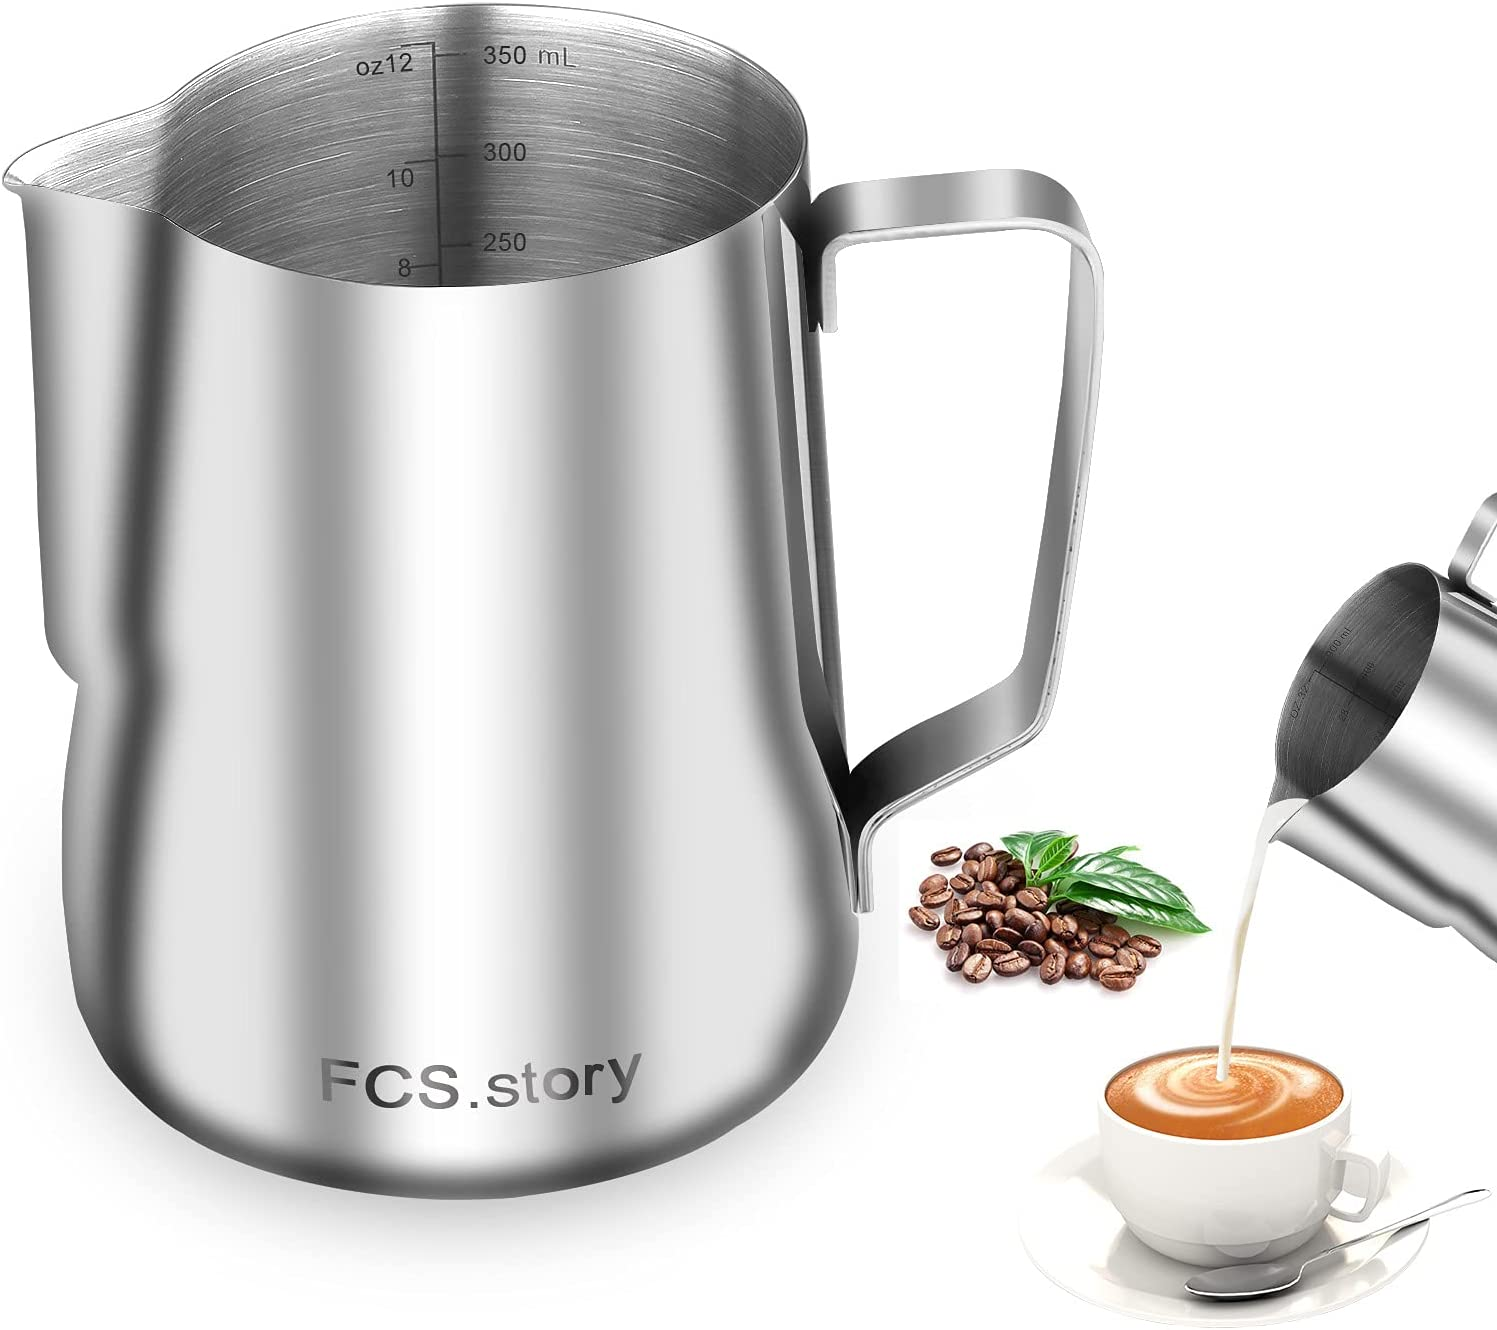 Stainless Steel Milk Frothing Pitcher, 12oz Milk Steaming Pitchers, Coffee Latte Art Milk Jug Cup with Measurements on Sides (12oz)